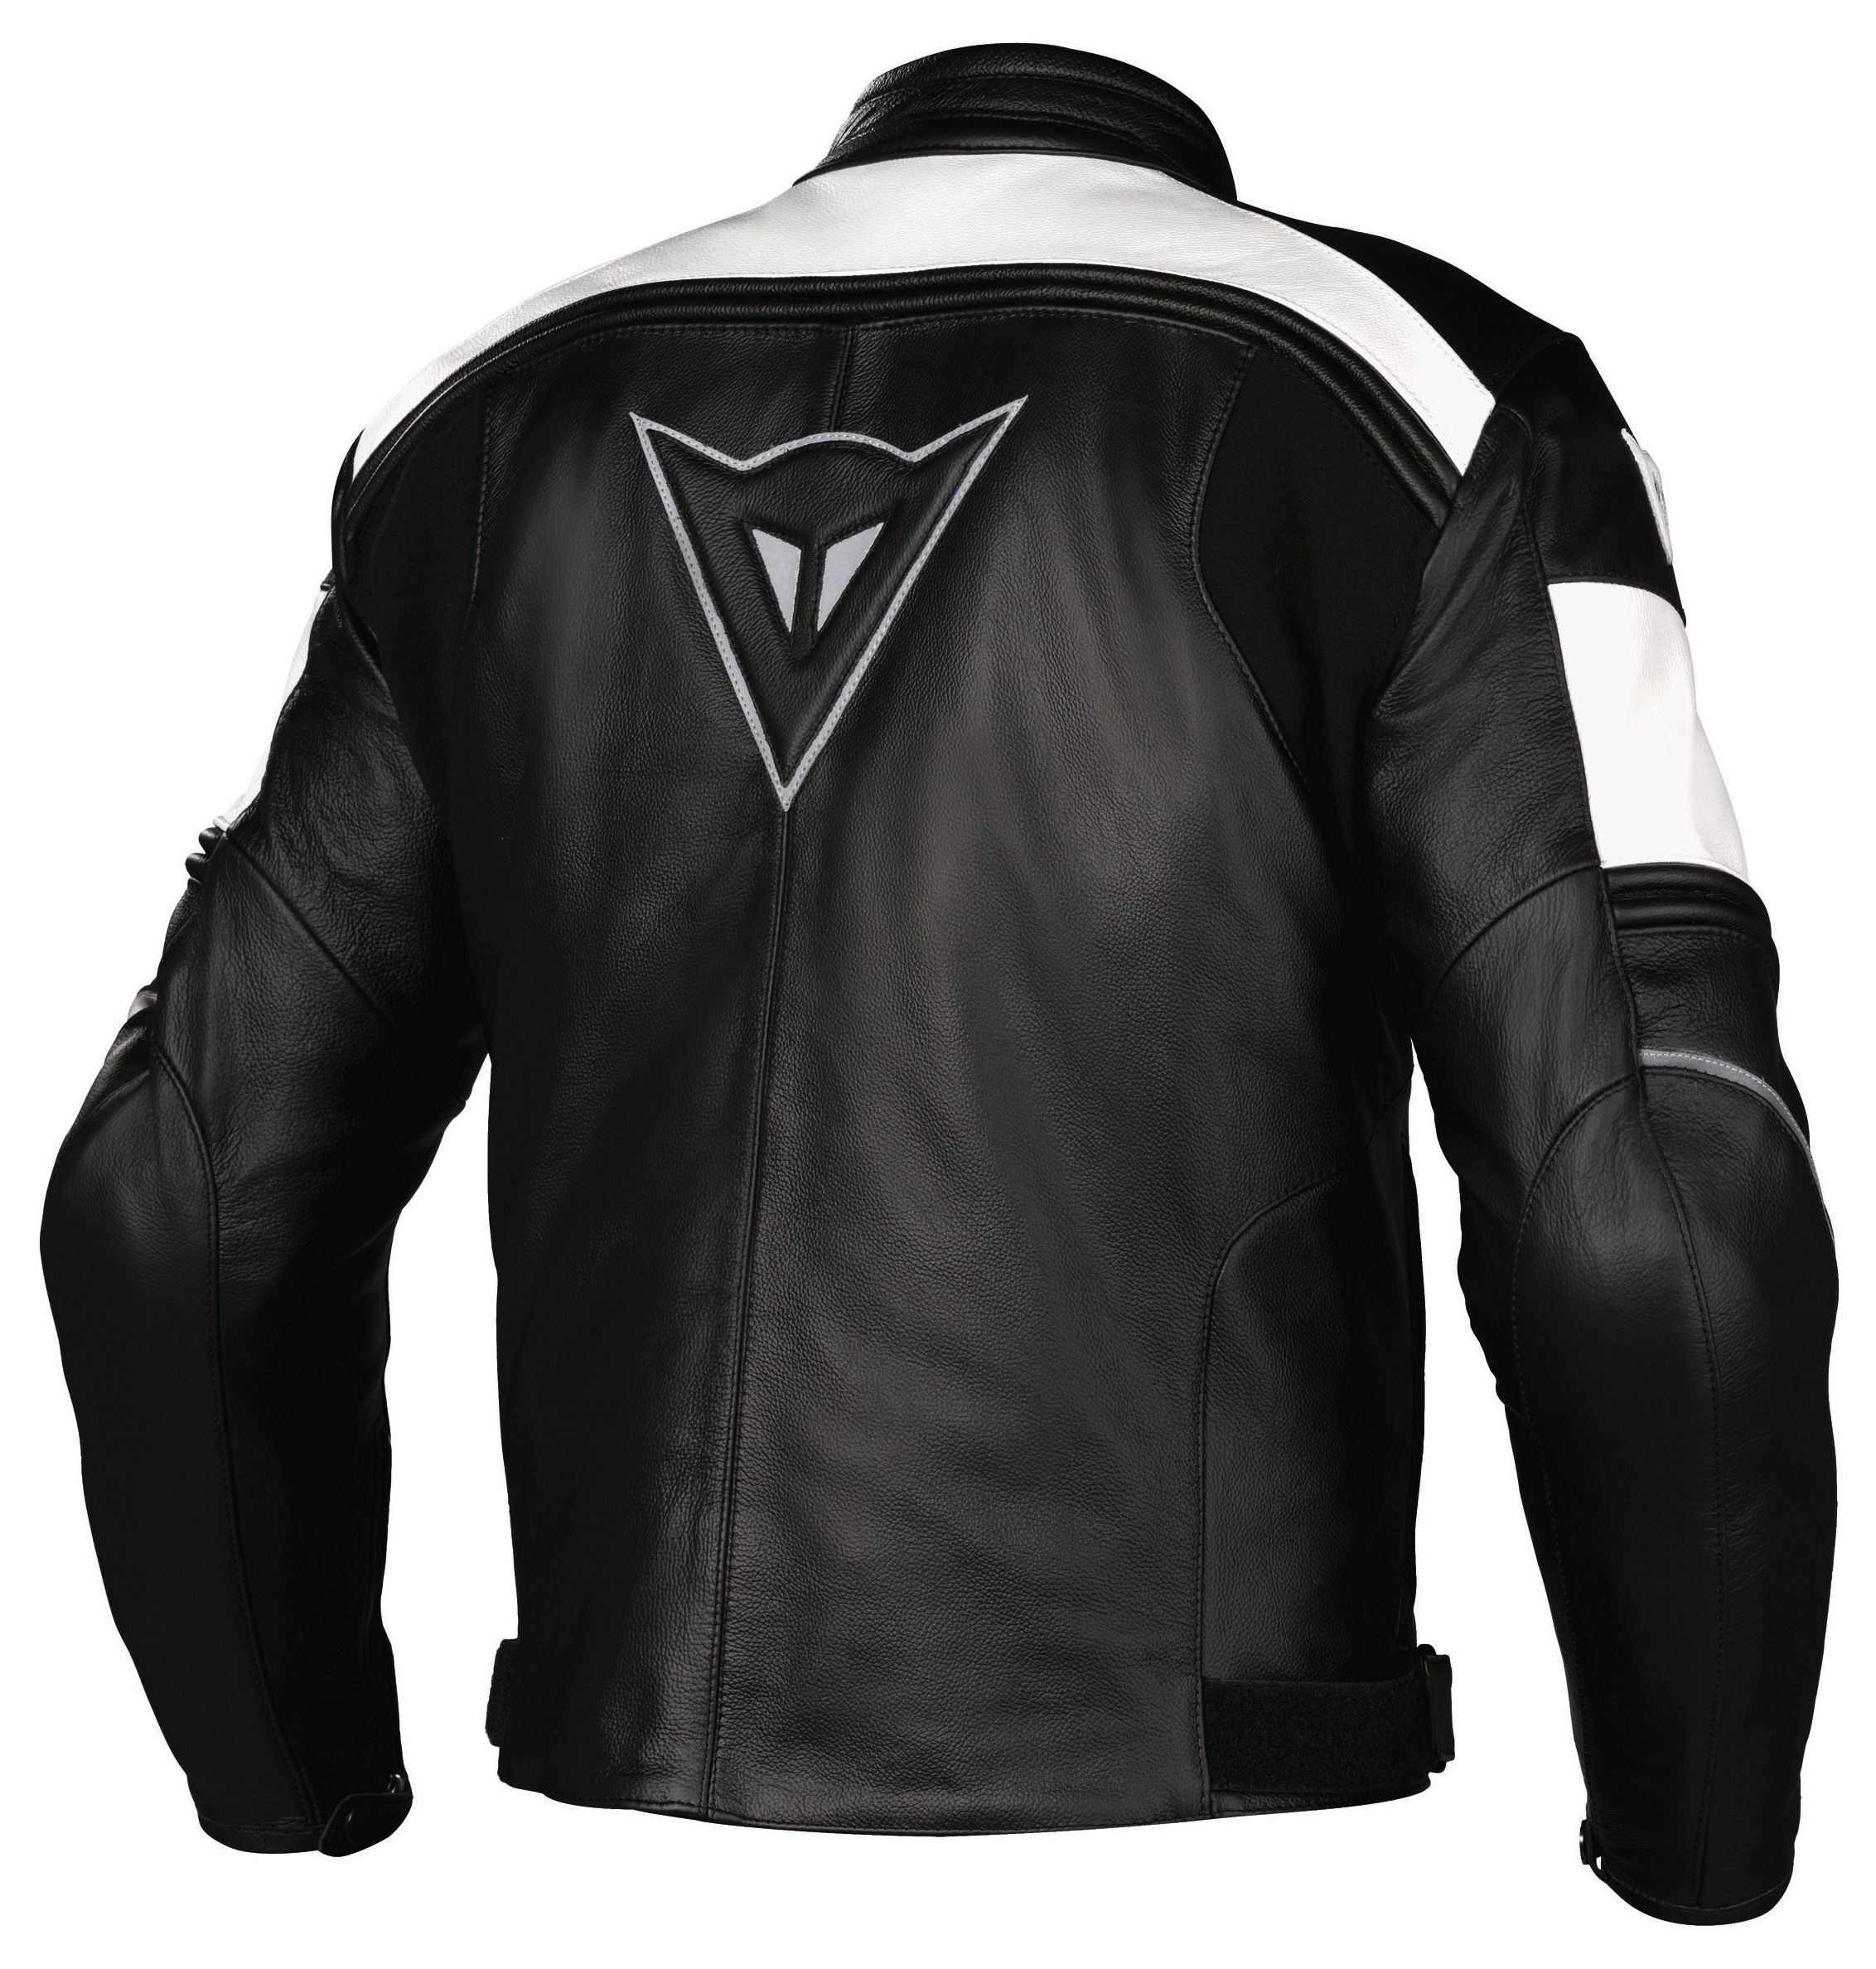 Dainese Zen Evo Perforated Leather Jacket Cycle Gear